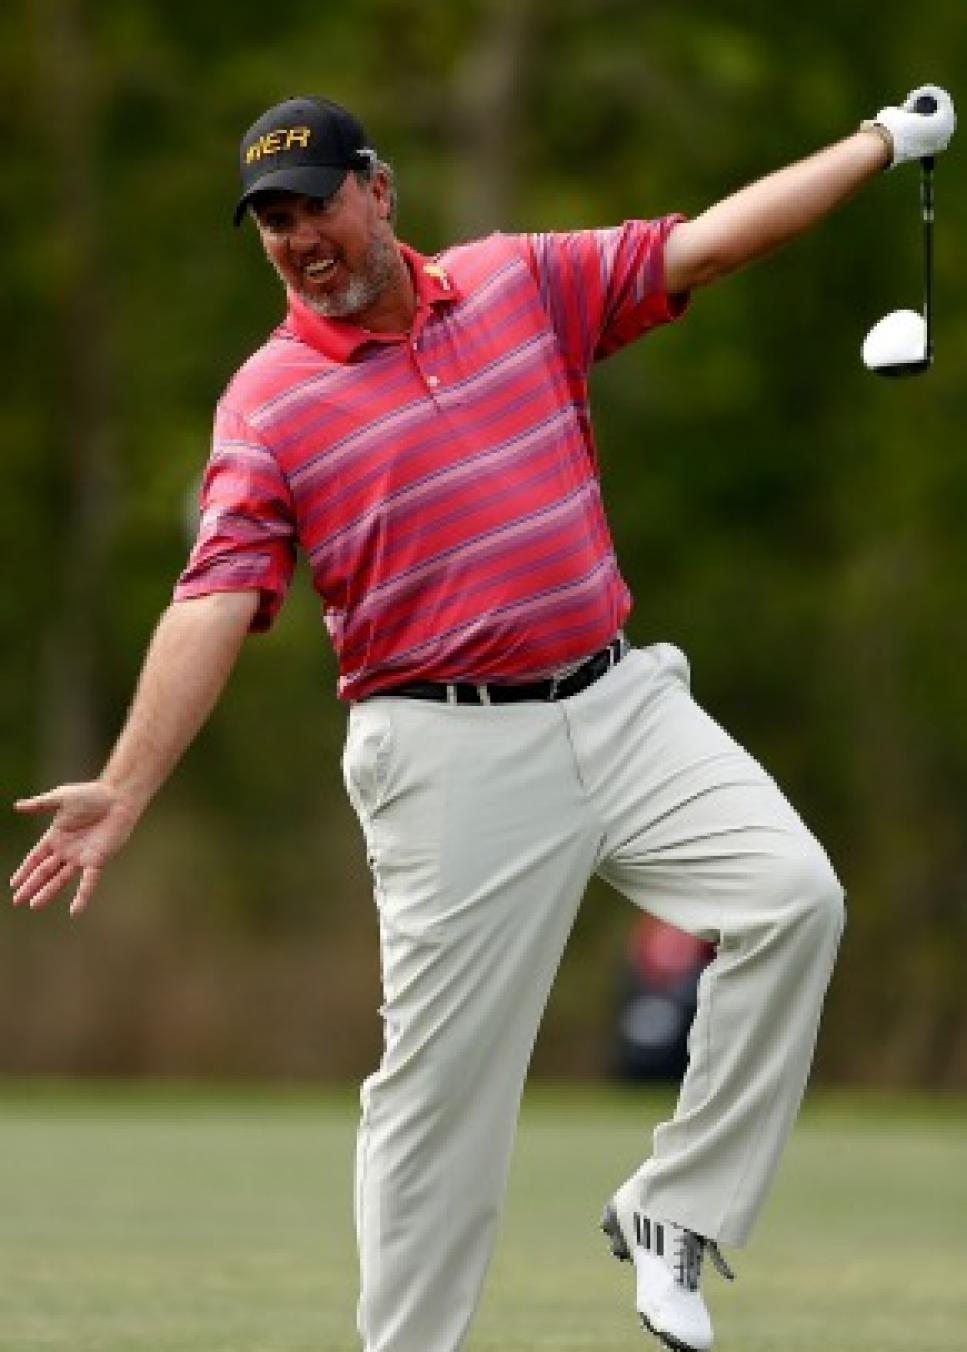 golf-tours-news-blogs-local-knowledge-assets_c-2013-06-blog-weekley-usopen-290-thumb-290x417-100603.jpg